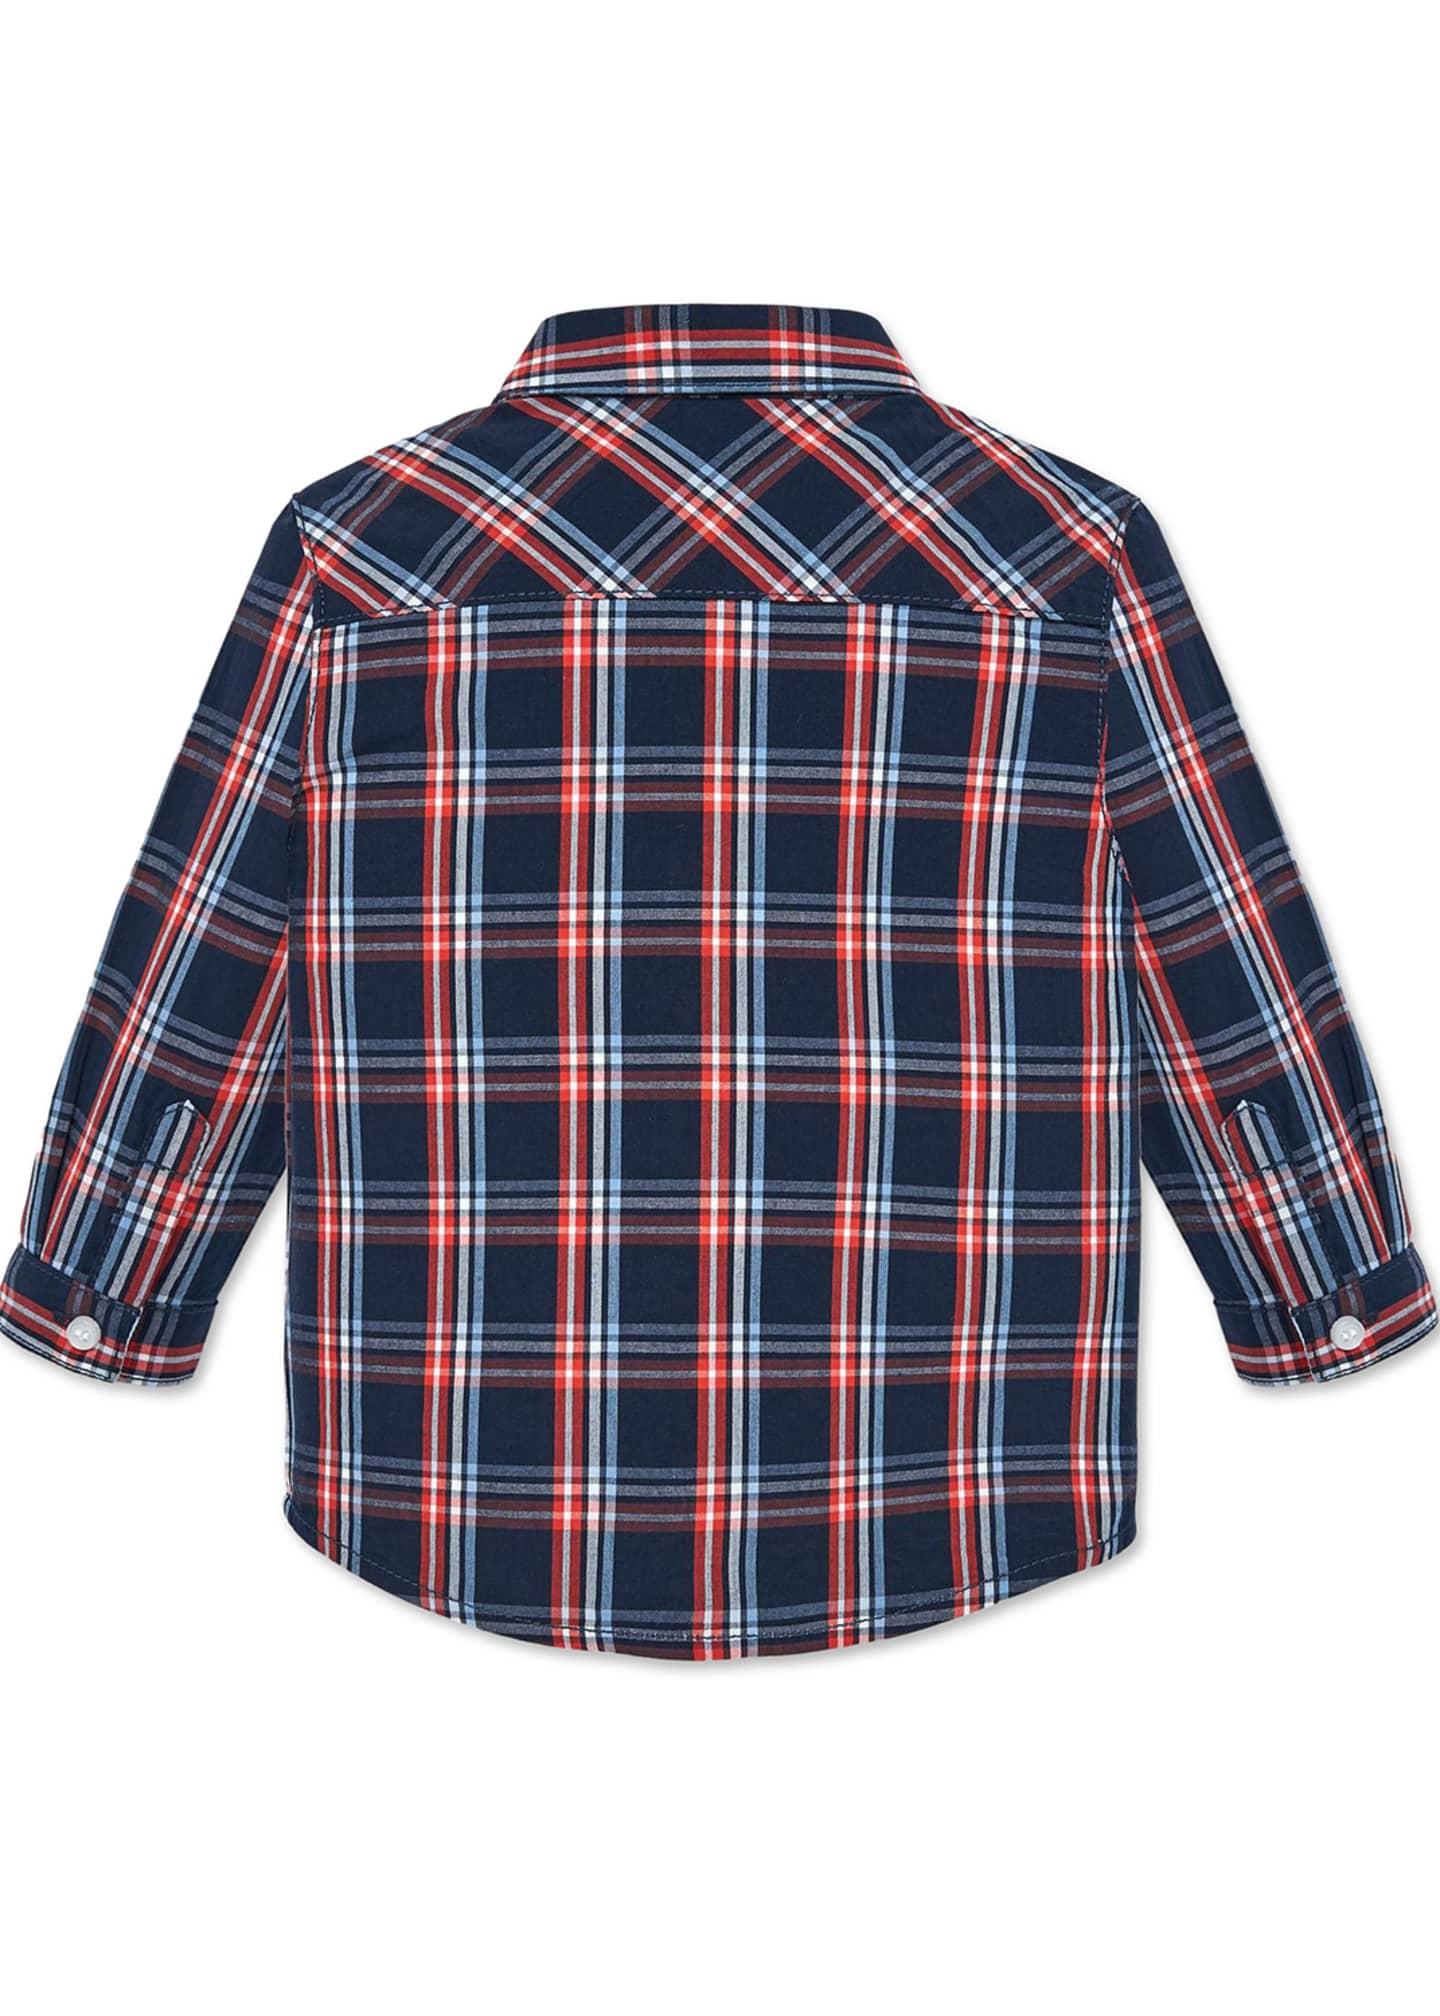 Image 3 of 3: Boy's Plaid Button Up Shirt, Size 12-36 Months